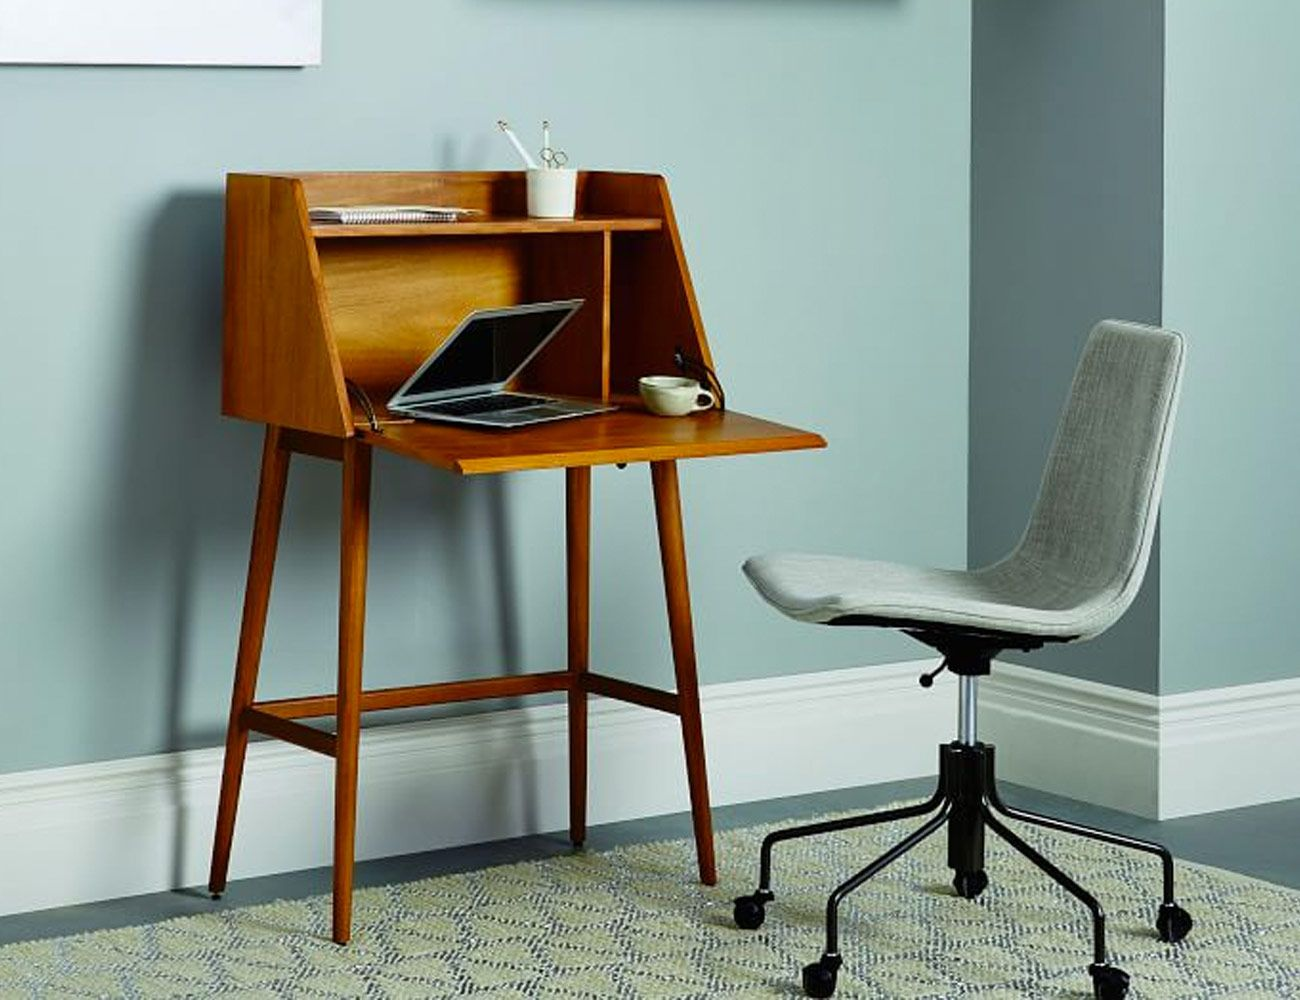 3 Best Desks for Small Rooms and Spaces - Gear Patrol